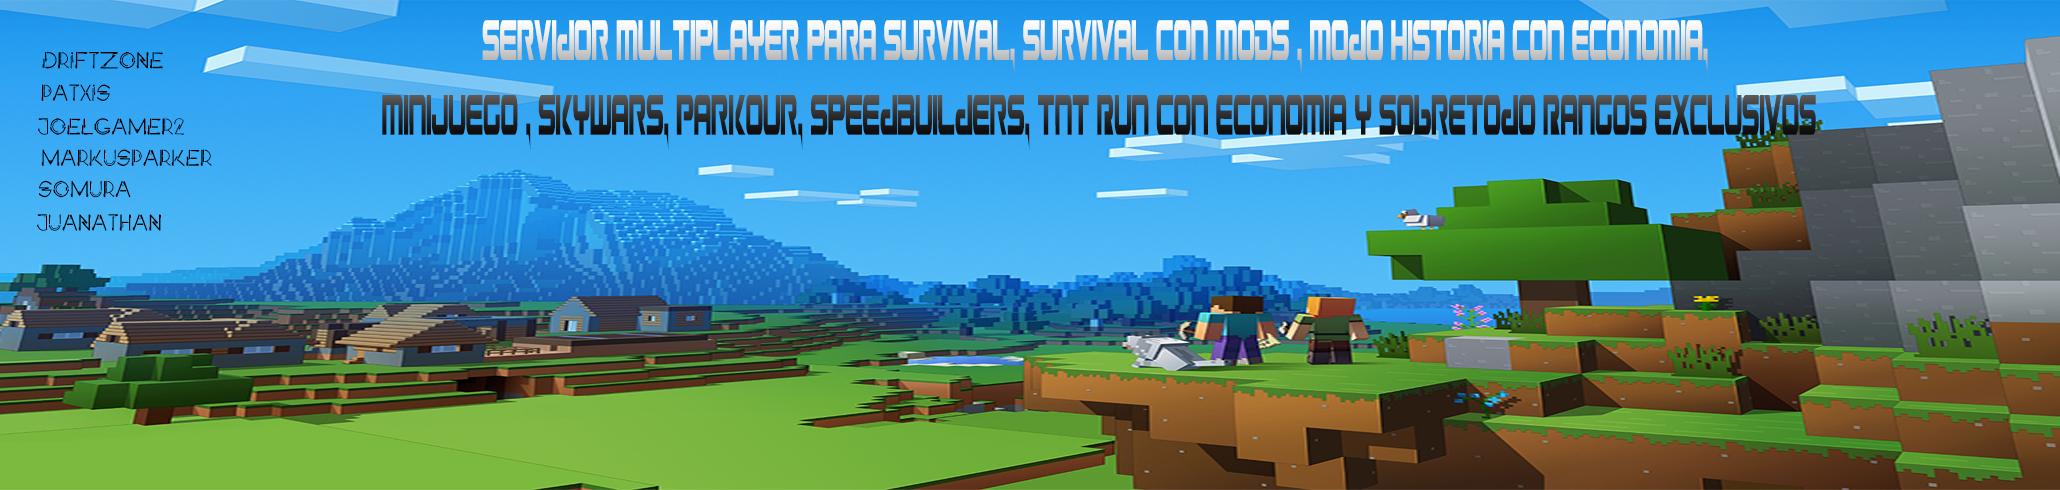 Banner for Chaotic Games server